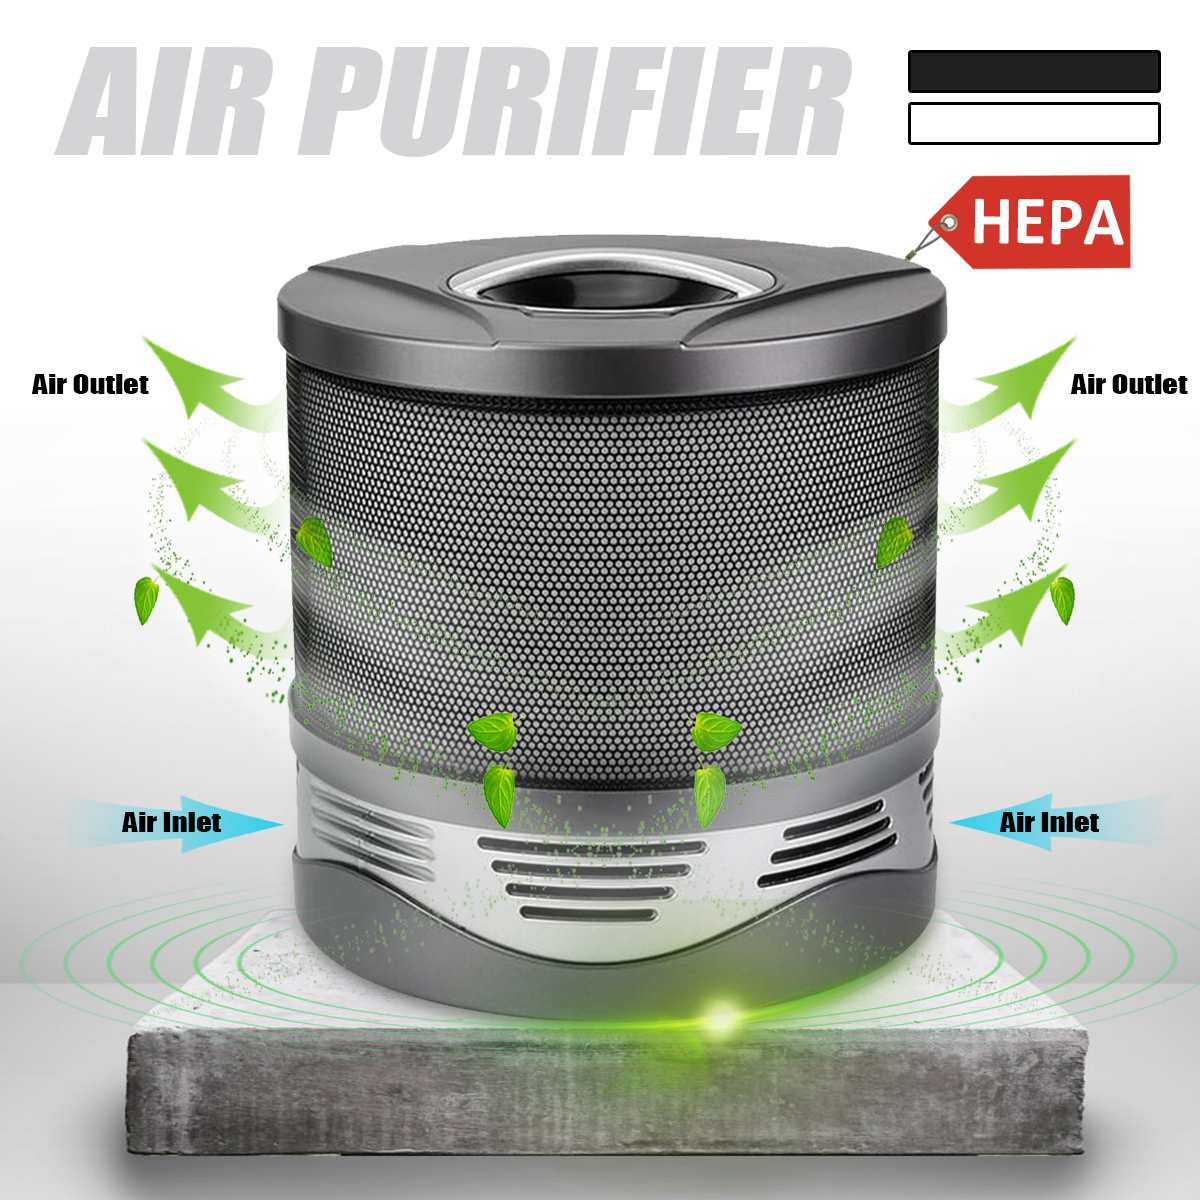 New Household Air Purifier Negative Lonizer Cleaner Sterilizer HEPA Filter Dust PM2.5 Odor Quiet Home Office Remove Smoke DustNew Household Air Purifier Negative Lonizer Cleaner Sterilizer HEPA Filter Dust PM2.5 Odor Quiet Home Office Remove Smoke Dust